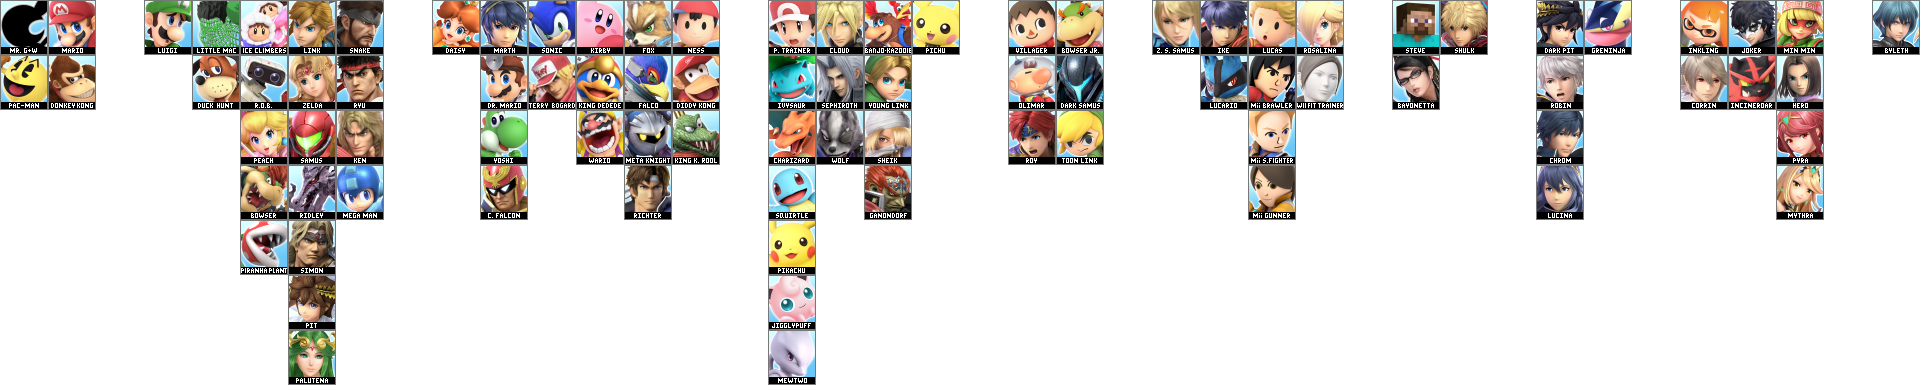 Character Only Timeline.png